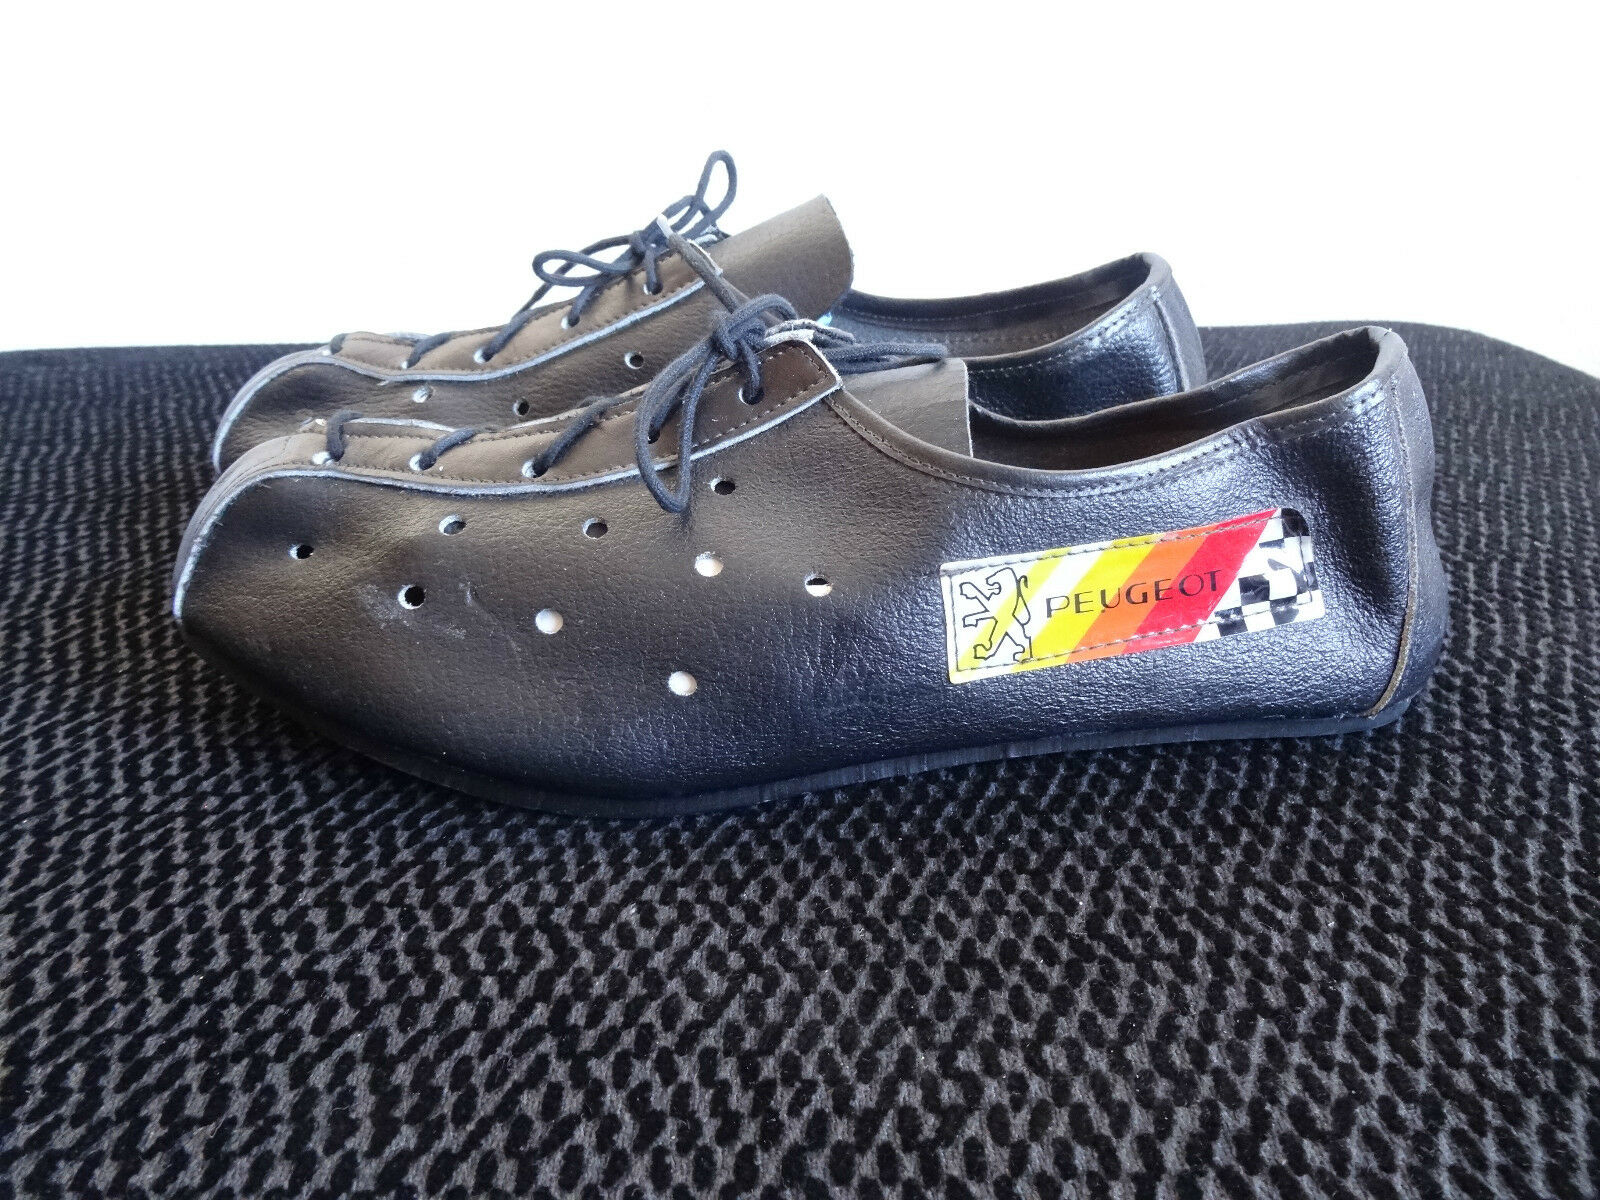 NOS RARE PEUGEOT VINTAGE LEATHER CYCLING scarpe Dimensione 39 7 CAMPAGNOLO HANDMADE